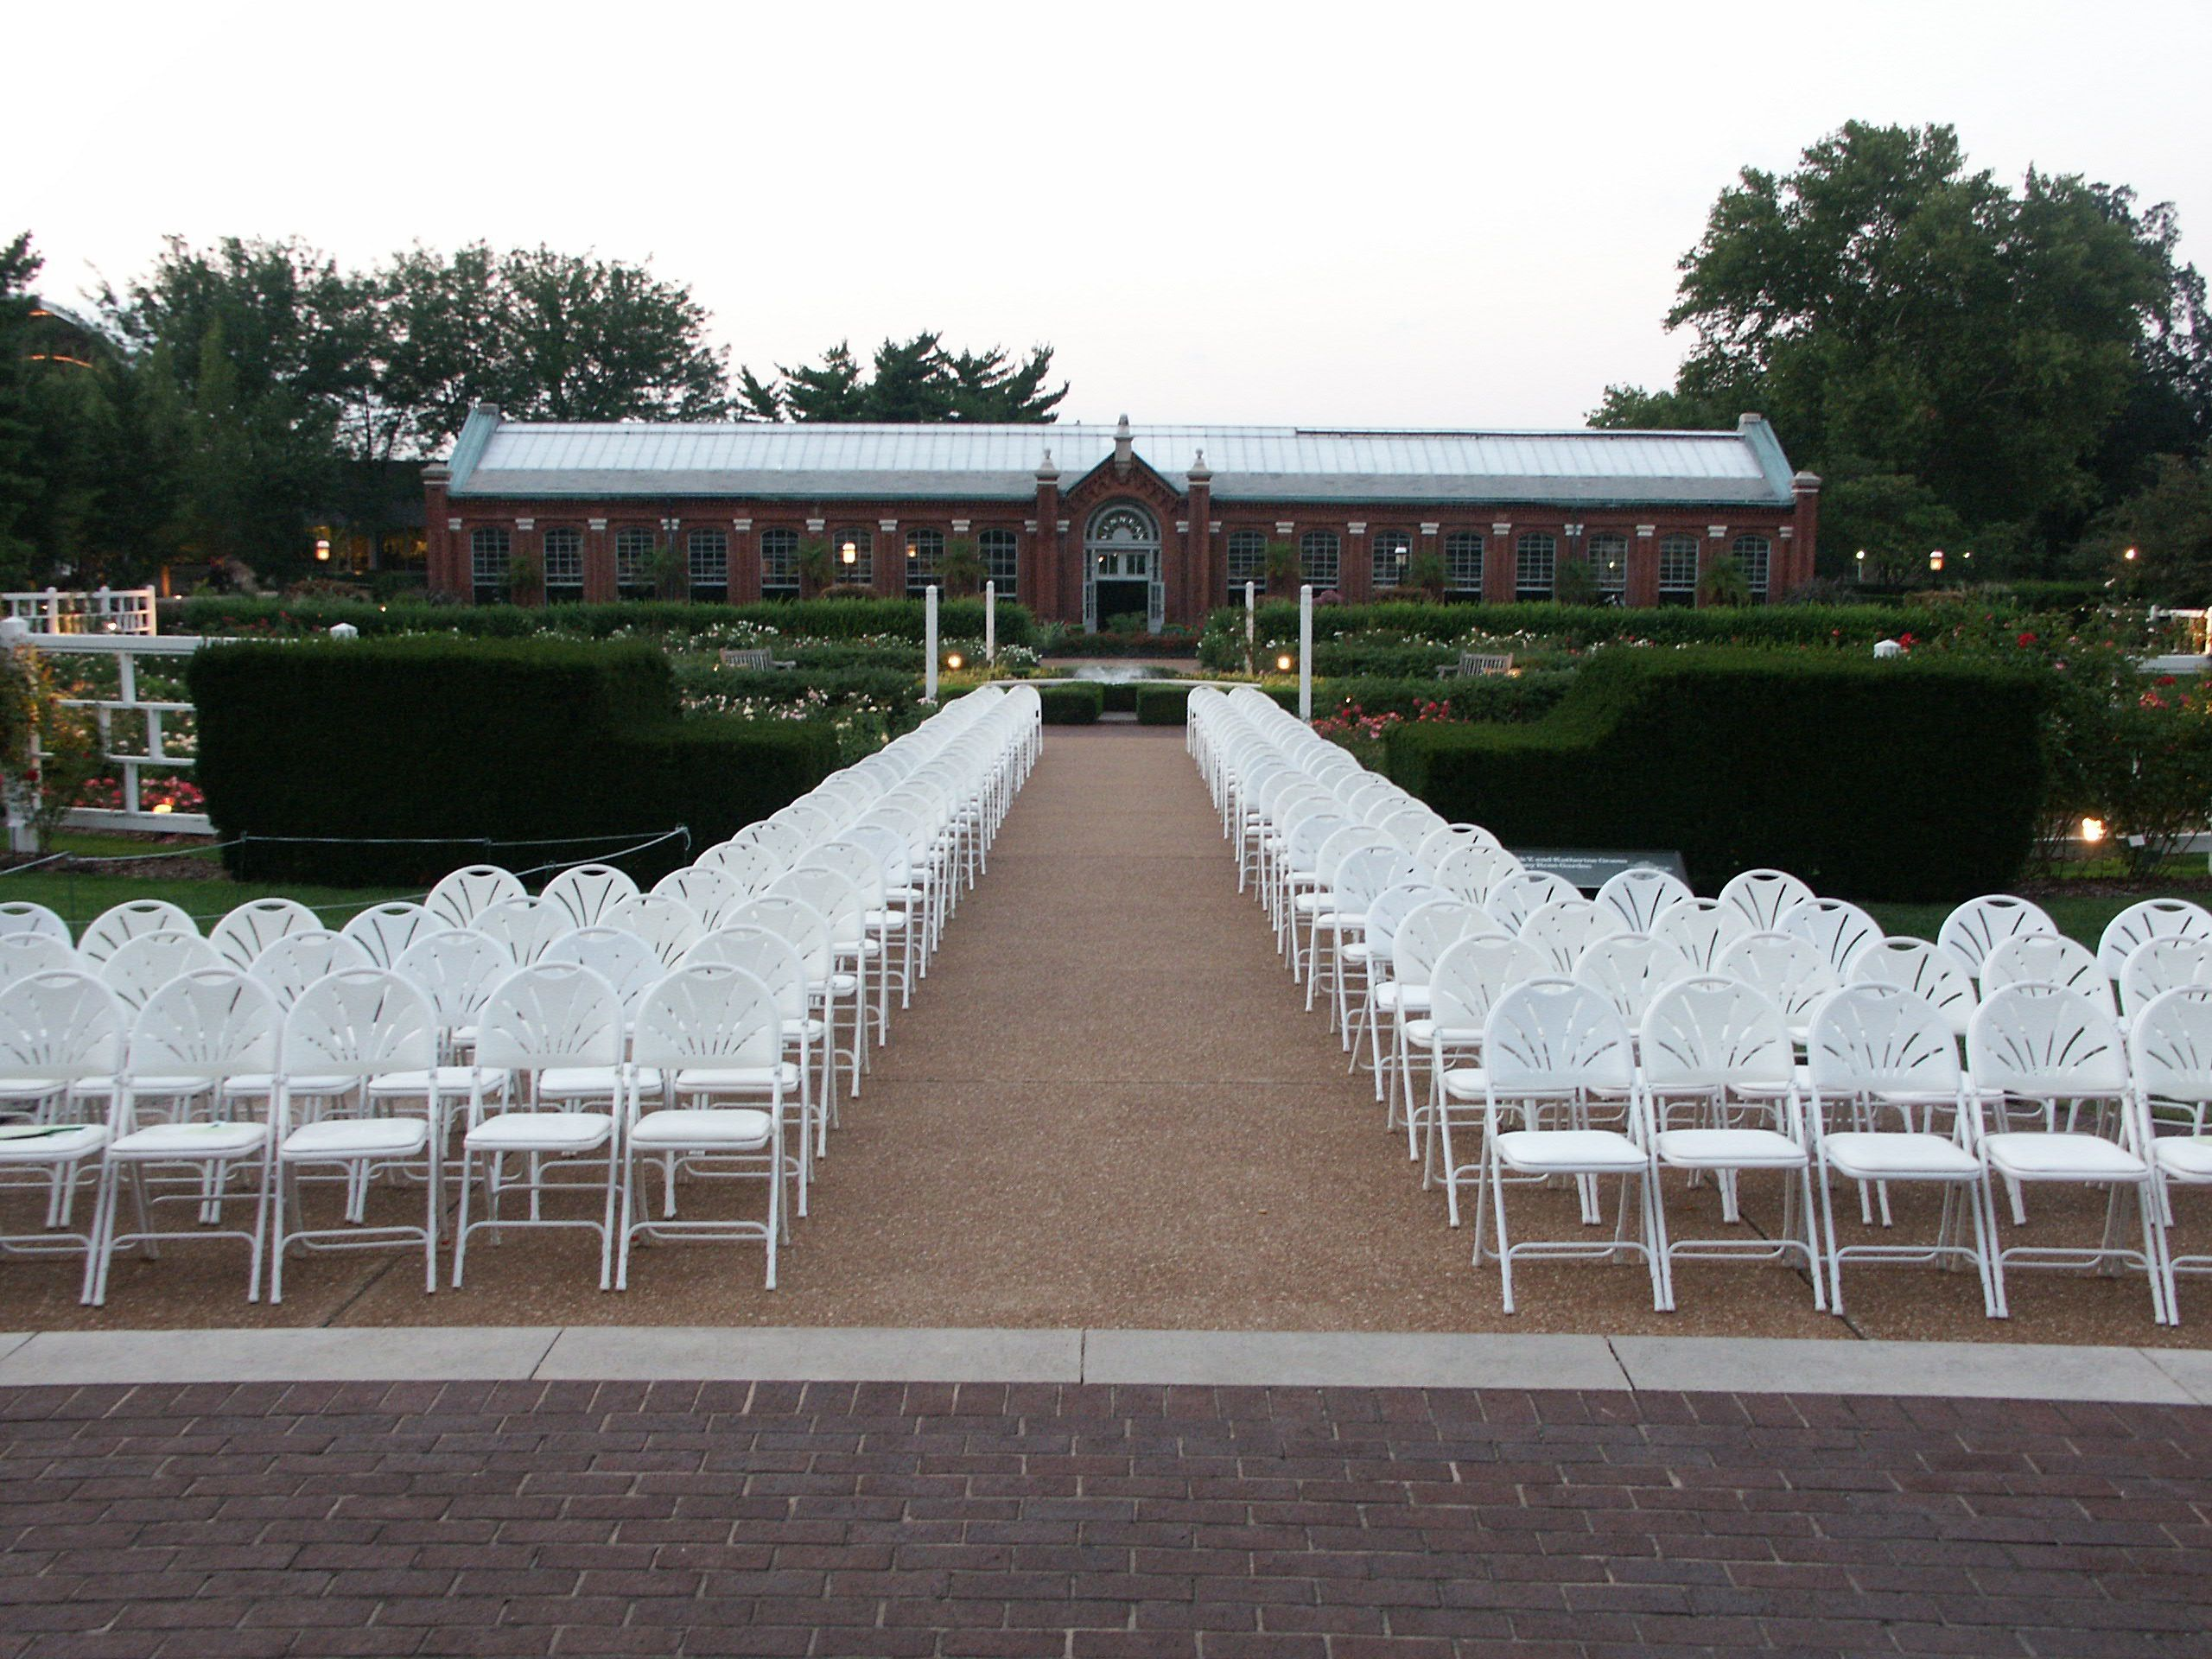 Merveilleux Chair Set Up For A Wedding Ceremony At The Gladney Rose Garden At The Missouri  Botanical